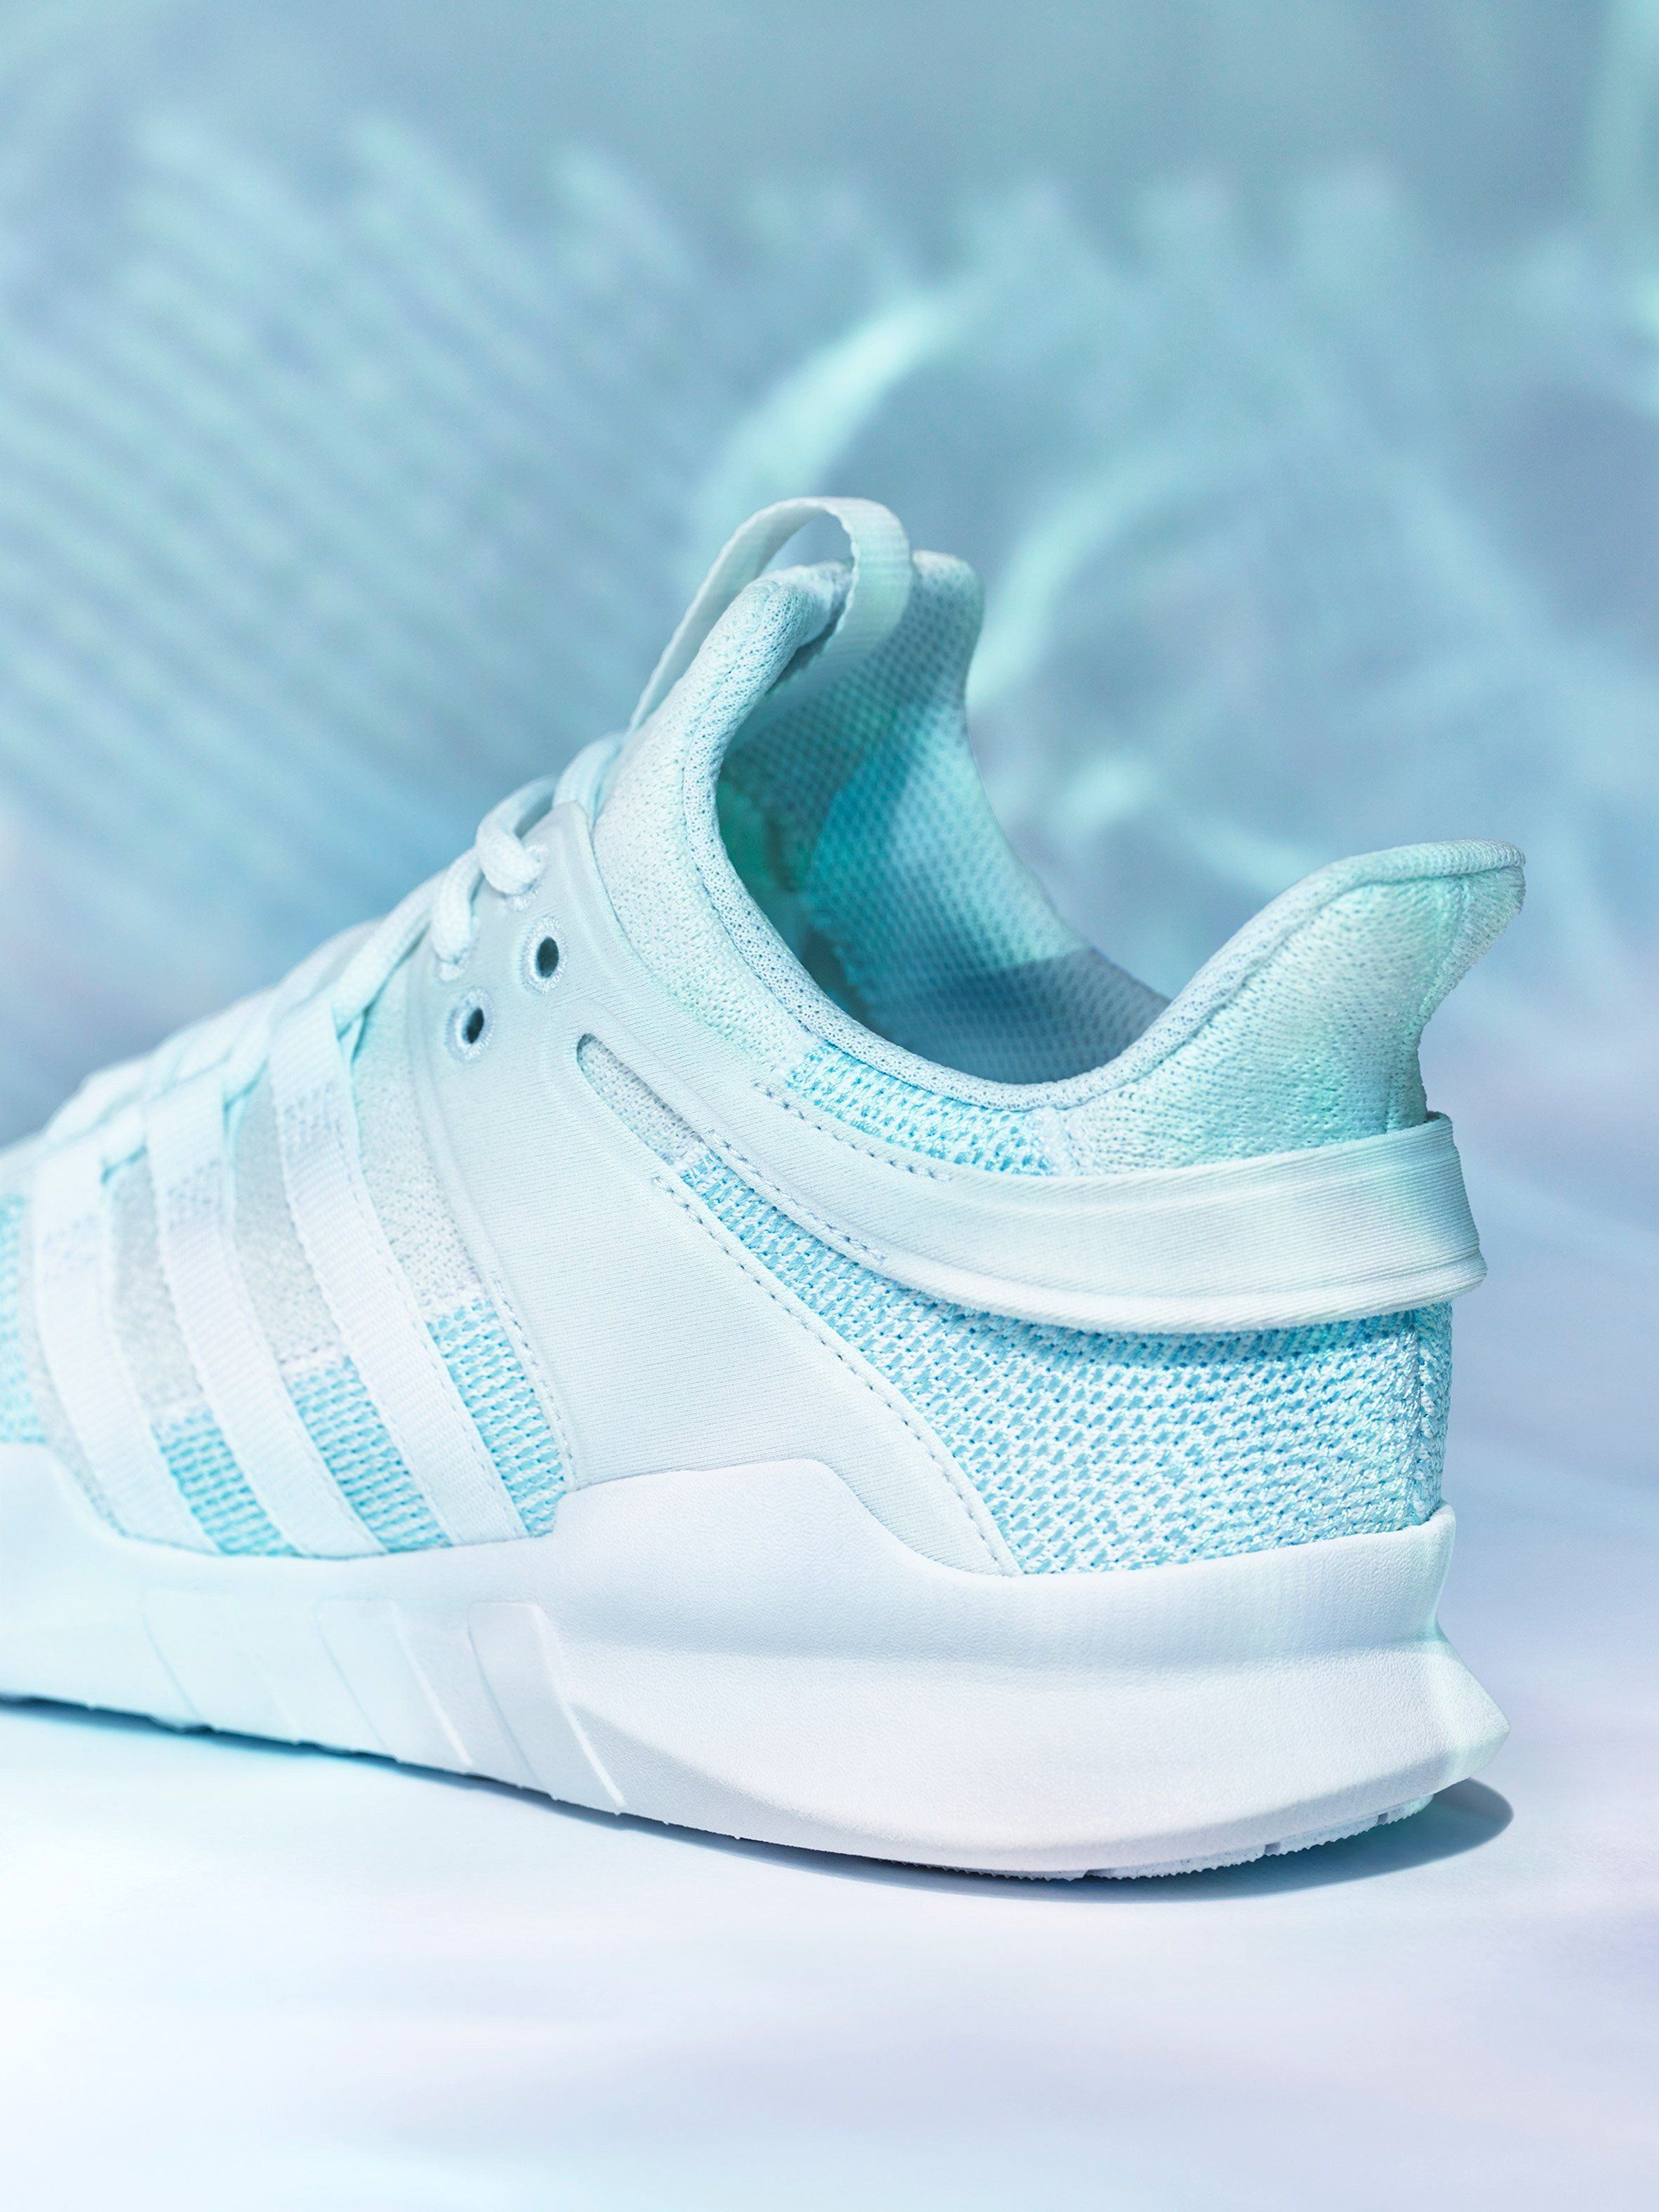 51e8c344d83 Adidas uses Parley ocean plastic to update one of its classic shoe designs